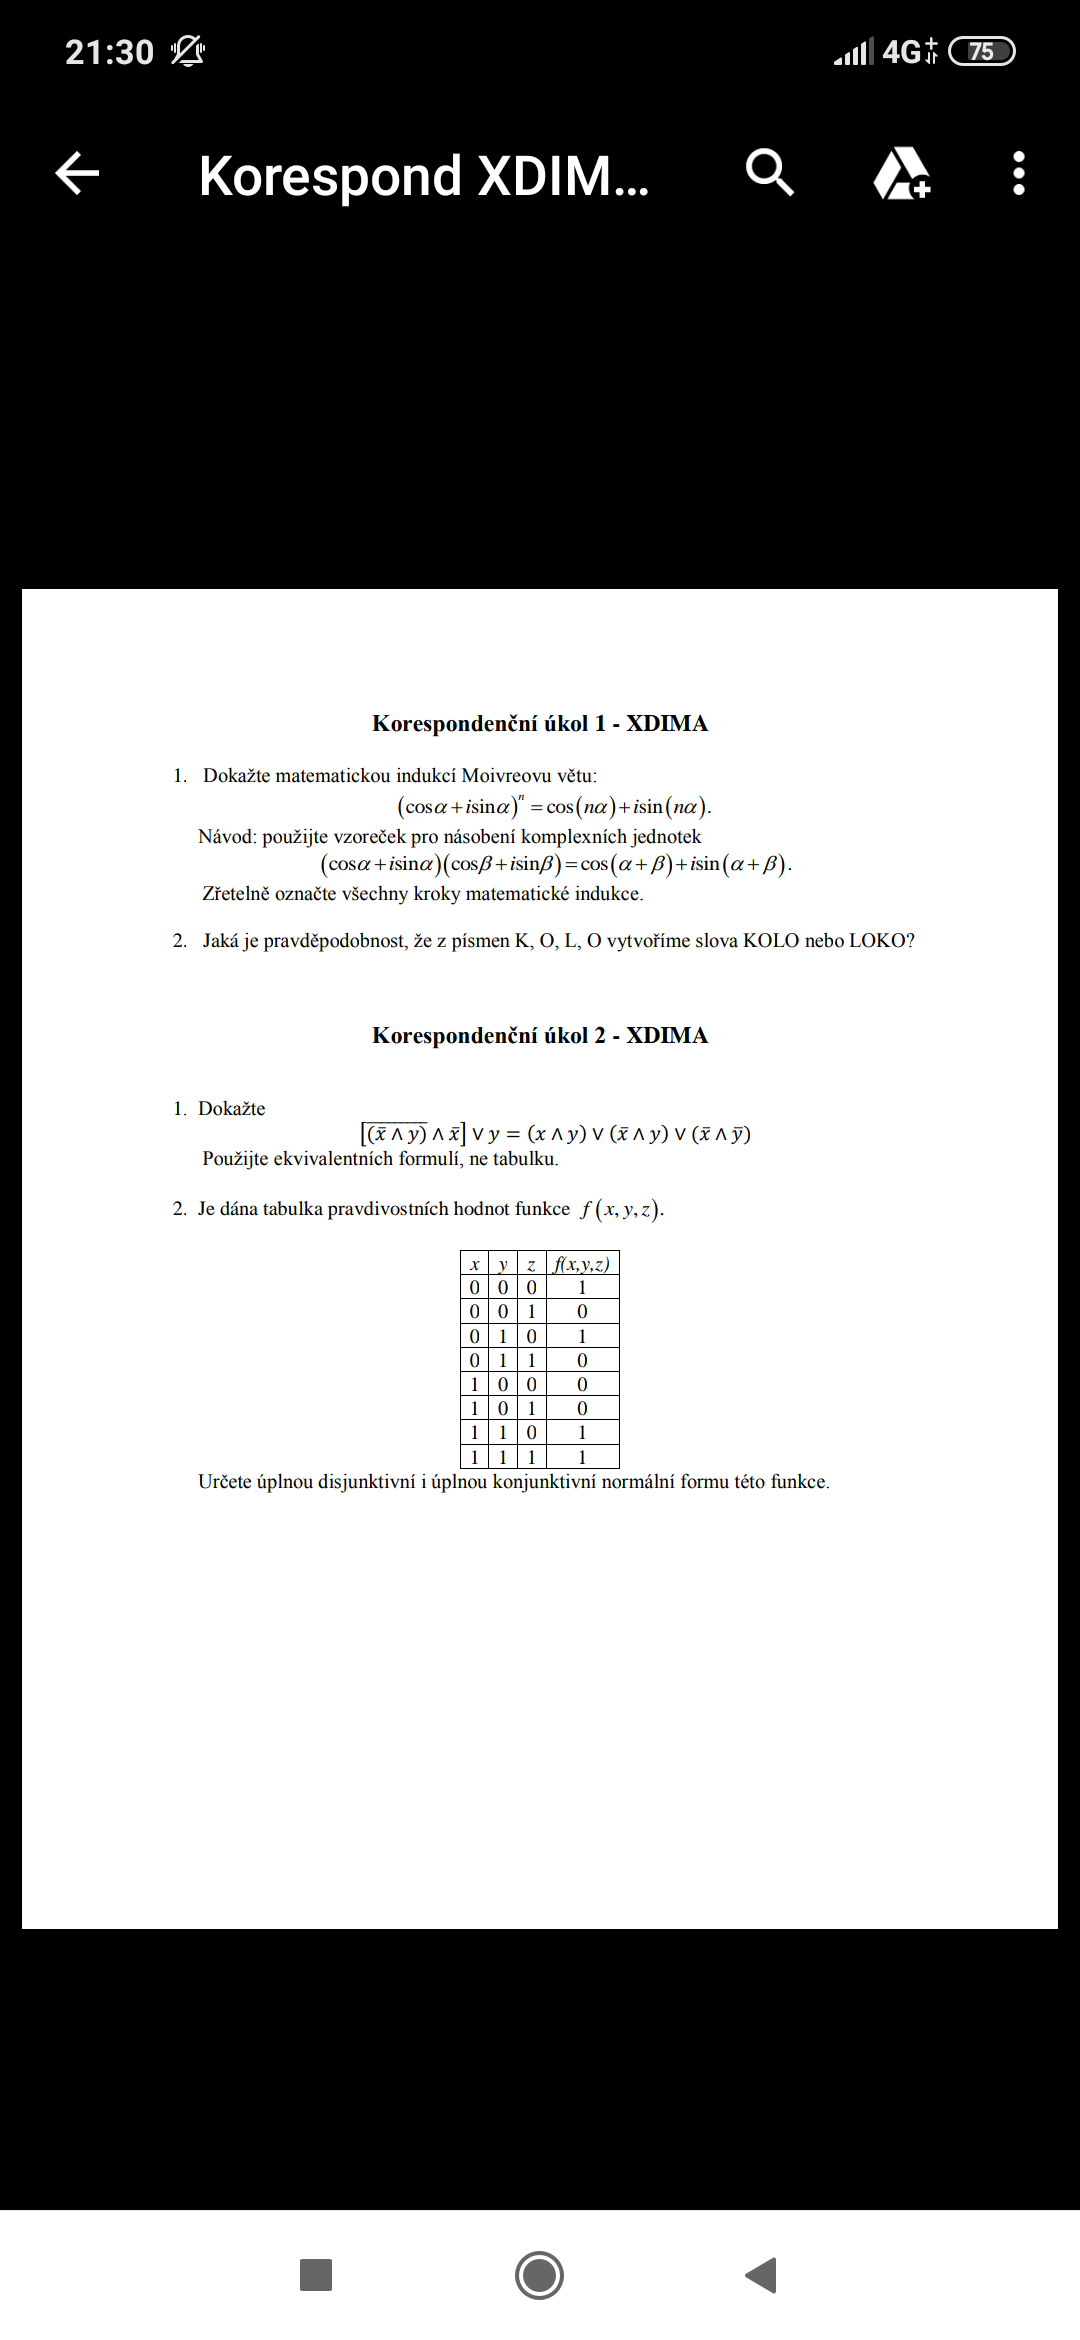 //forum.matematika.cz/upload3/img/2019-06/04406_Screenshot_2019-06-02-21-30-02-922_com.google.android.apps.docs.png